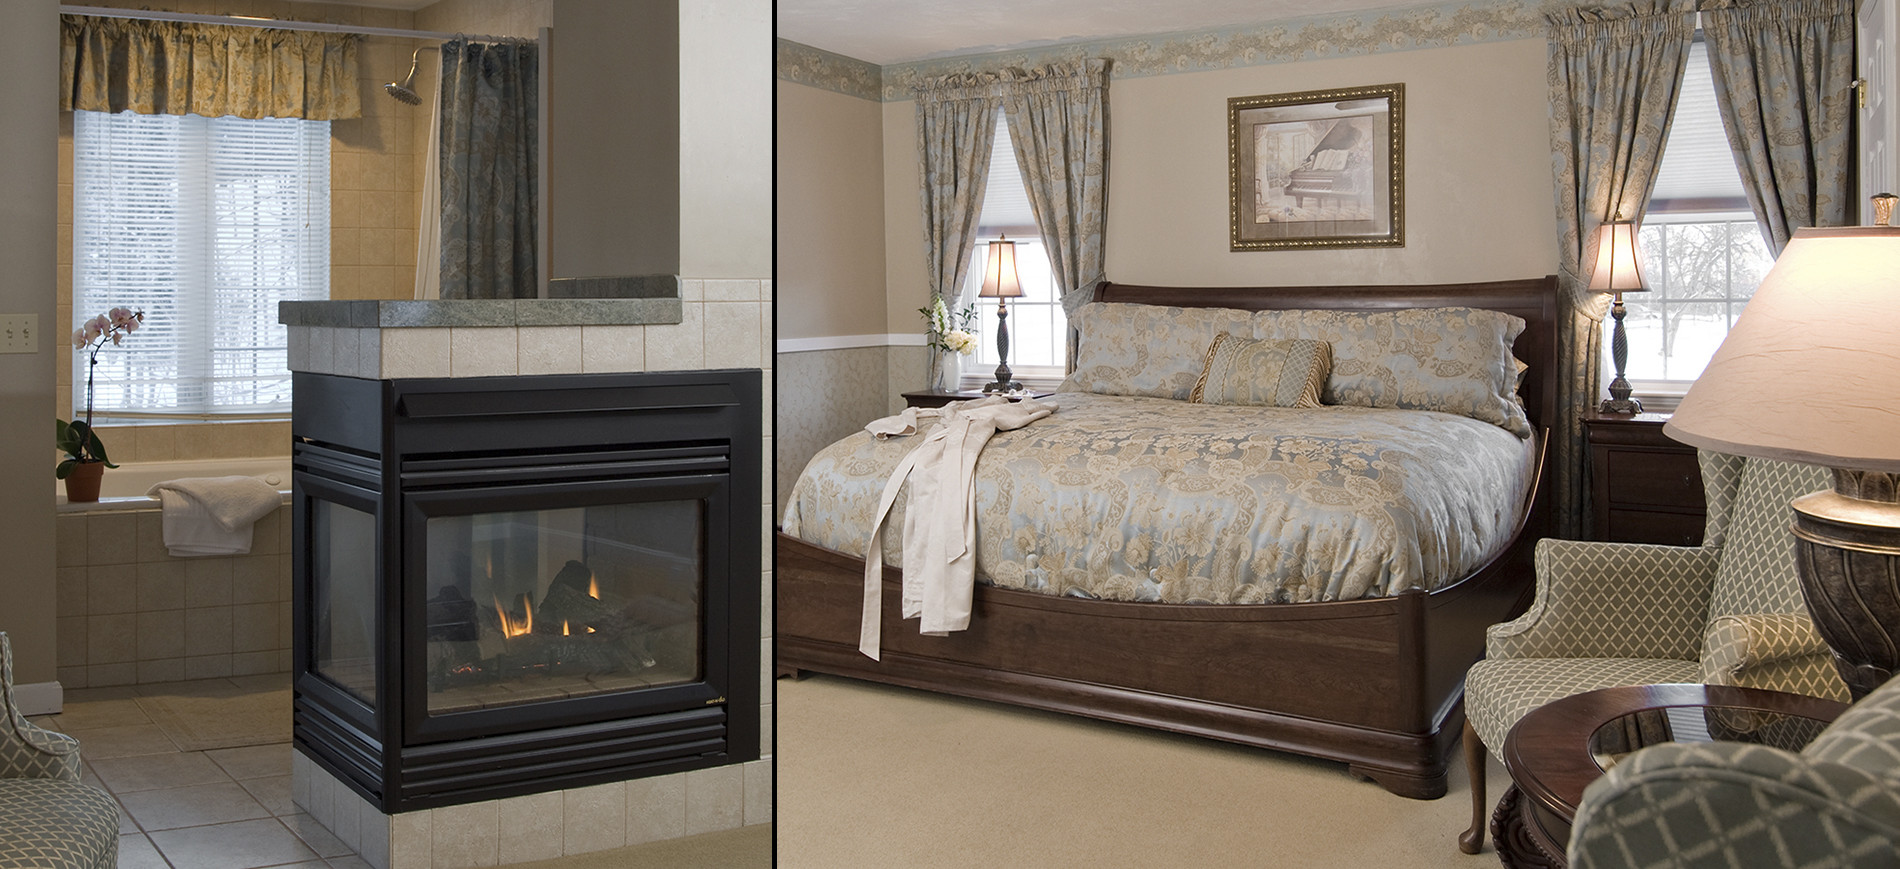 wing chair, jetted tub tub with window above behind three sided gas fireplace, king bed with blue & beige bedding,windows with drapes & nightstand with lamp on each side of bed